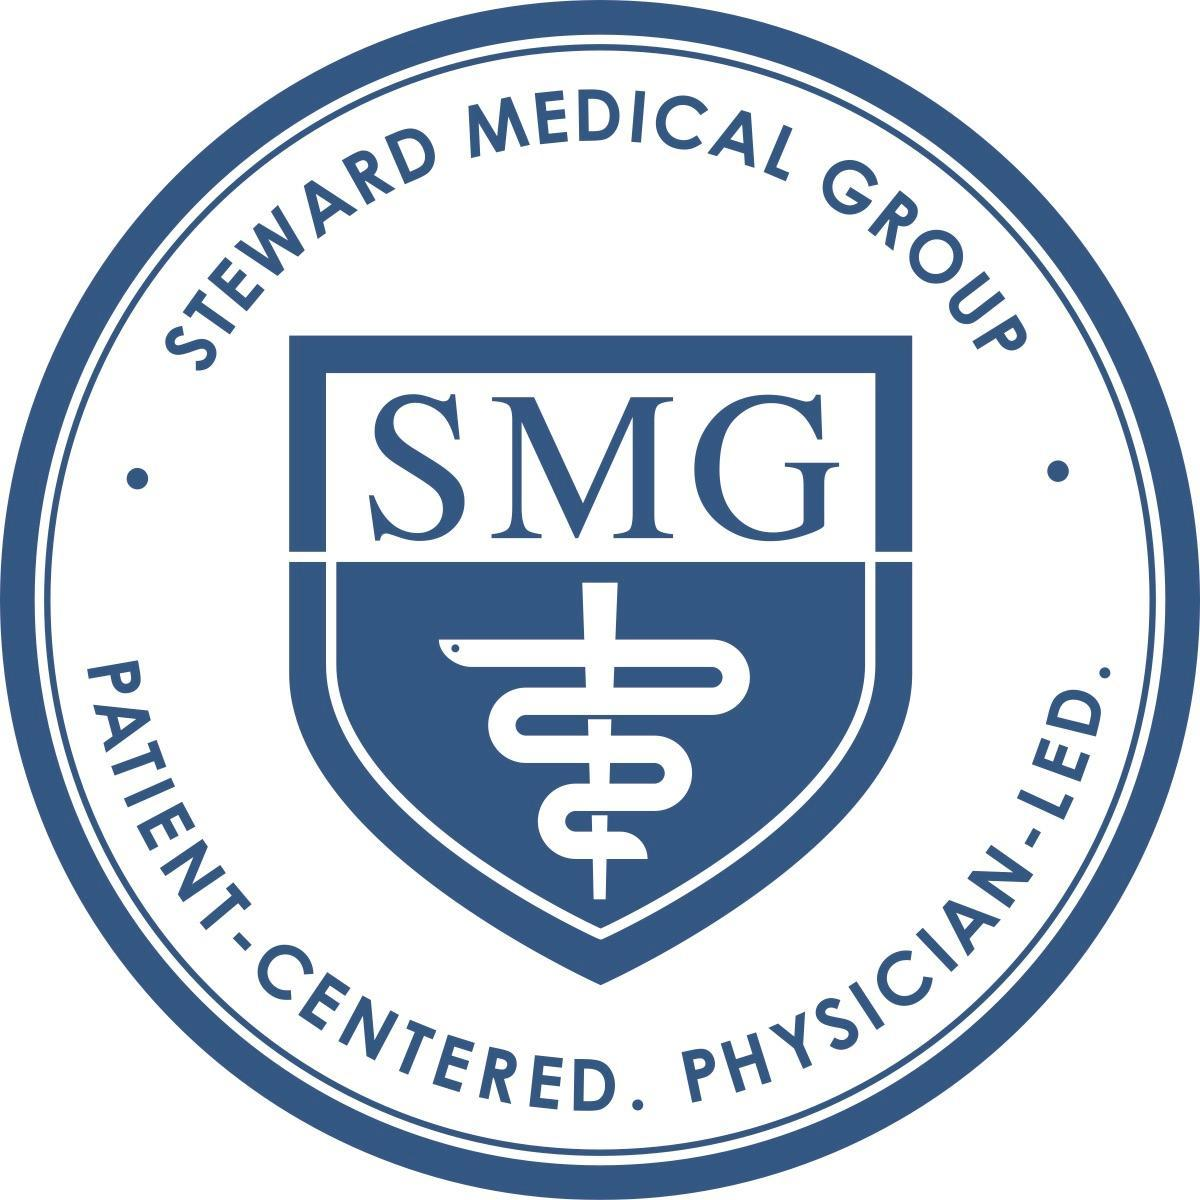 SMG Branch Internal Medicine